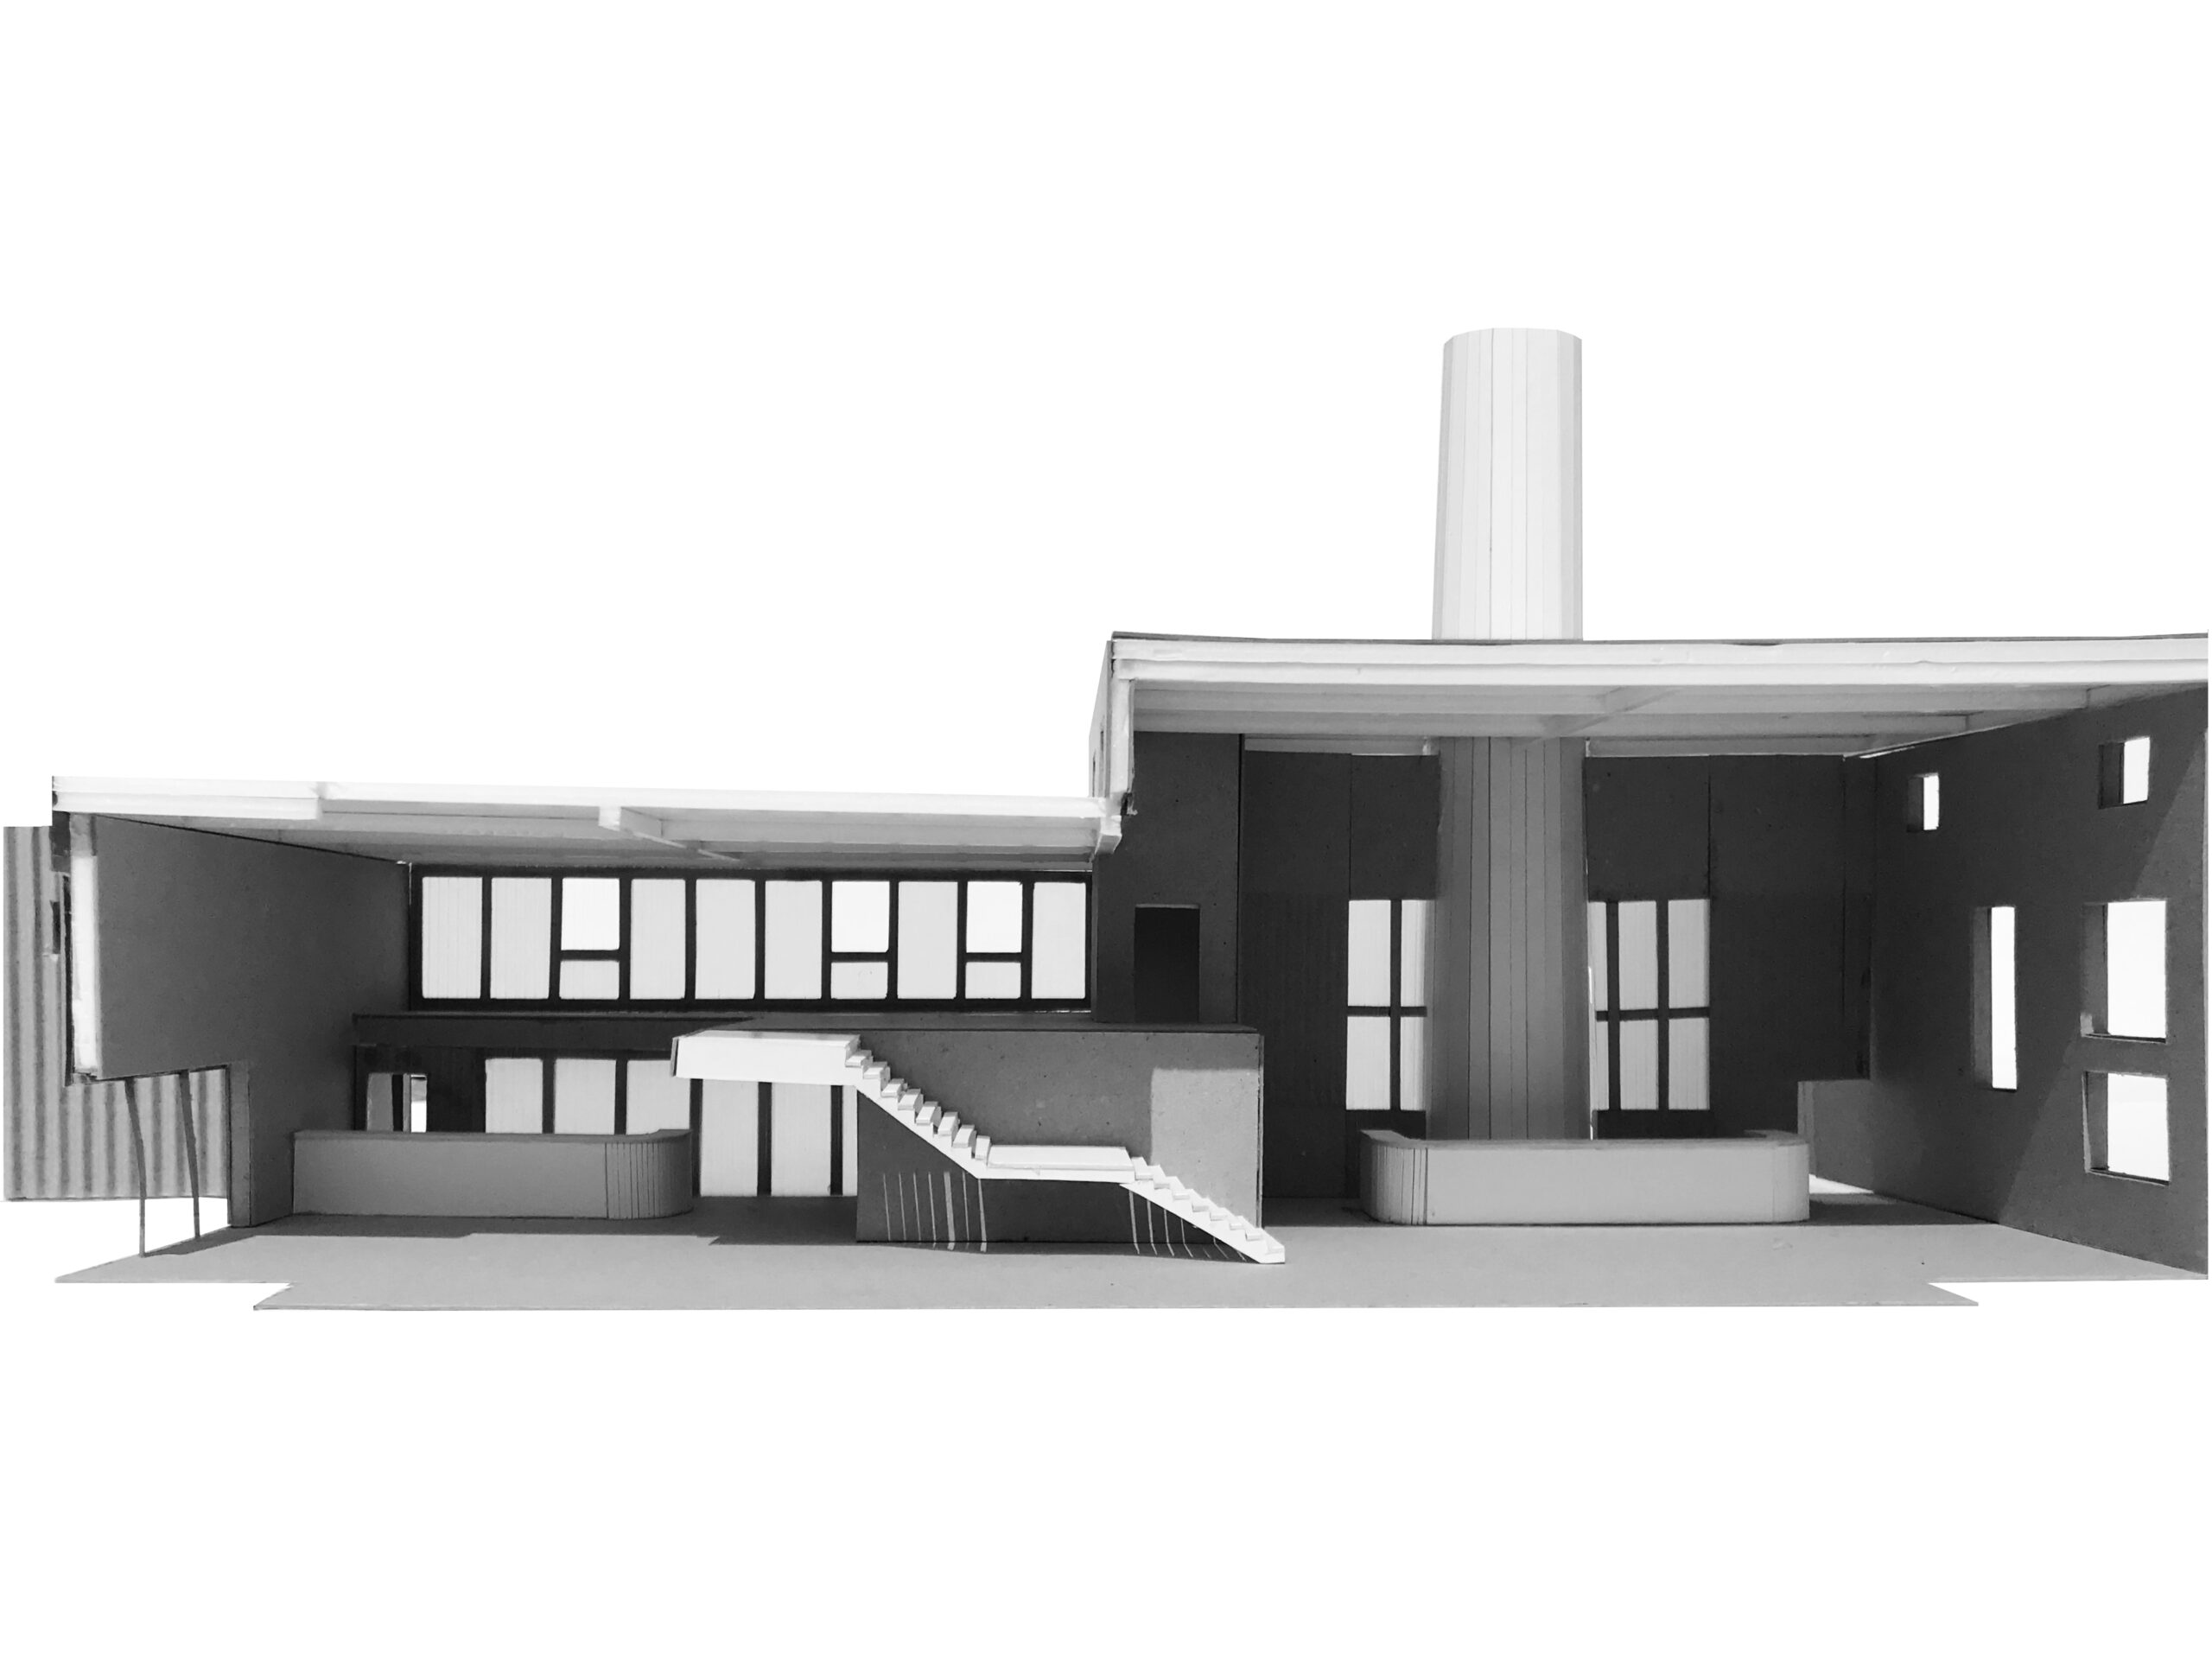 An Interior model of the bottling building. It is grey in colour and shows reception desk to the right and stairs up to the mezzanine on the left